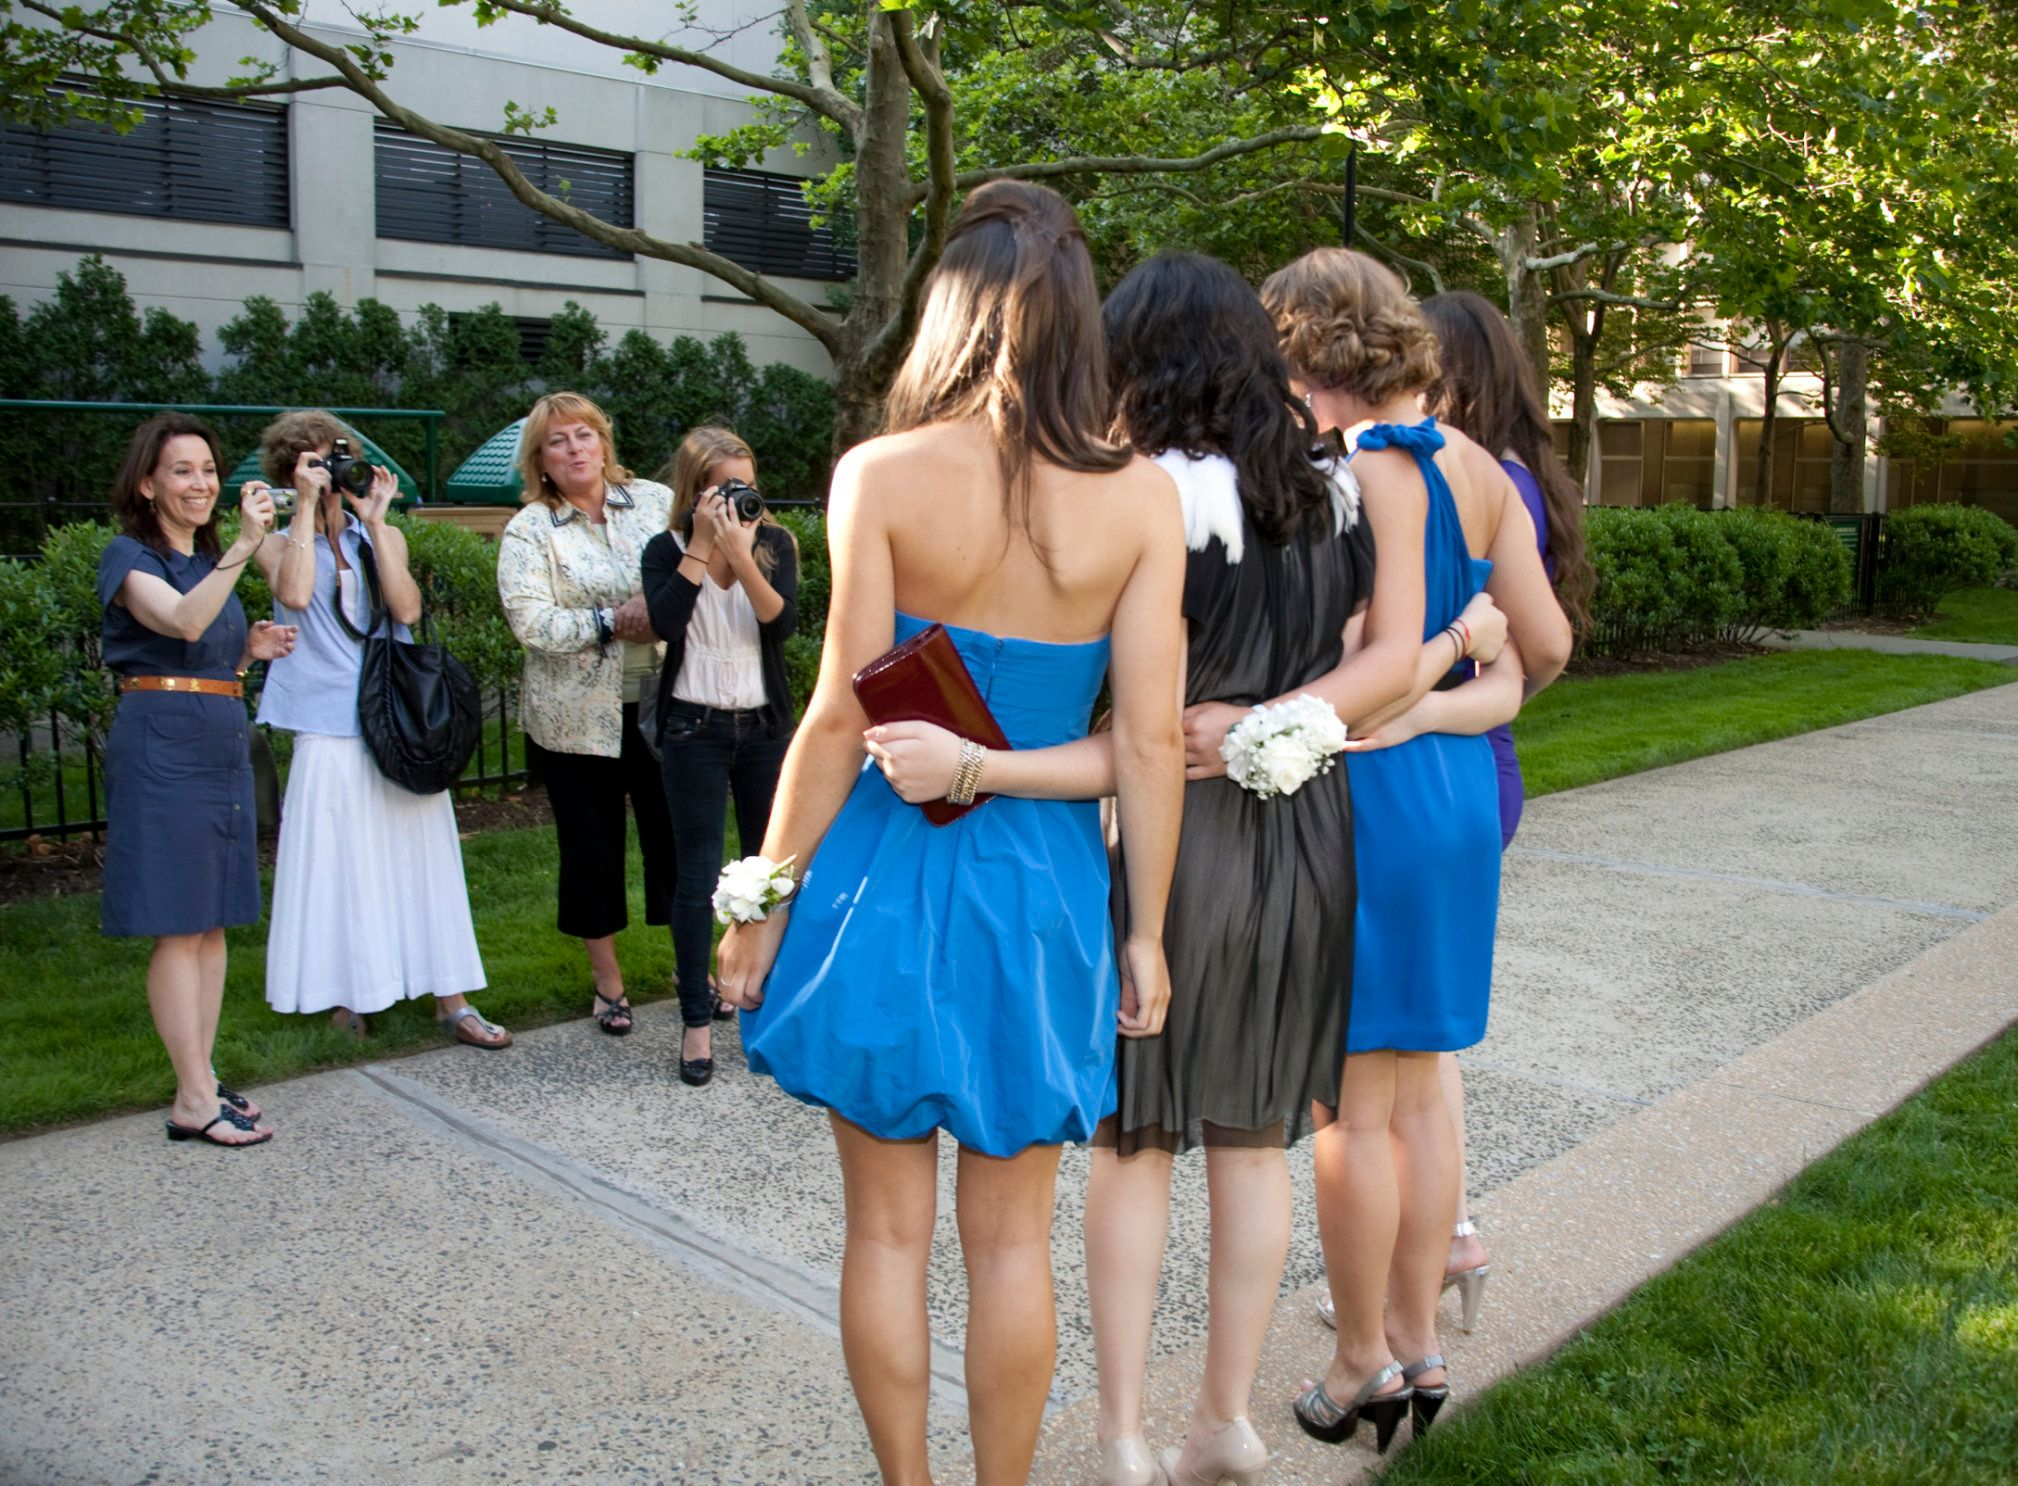 By their mothers and sister before the senior prom.